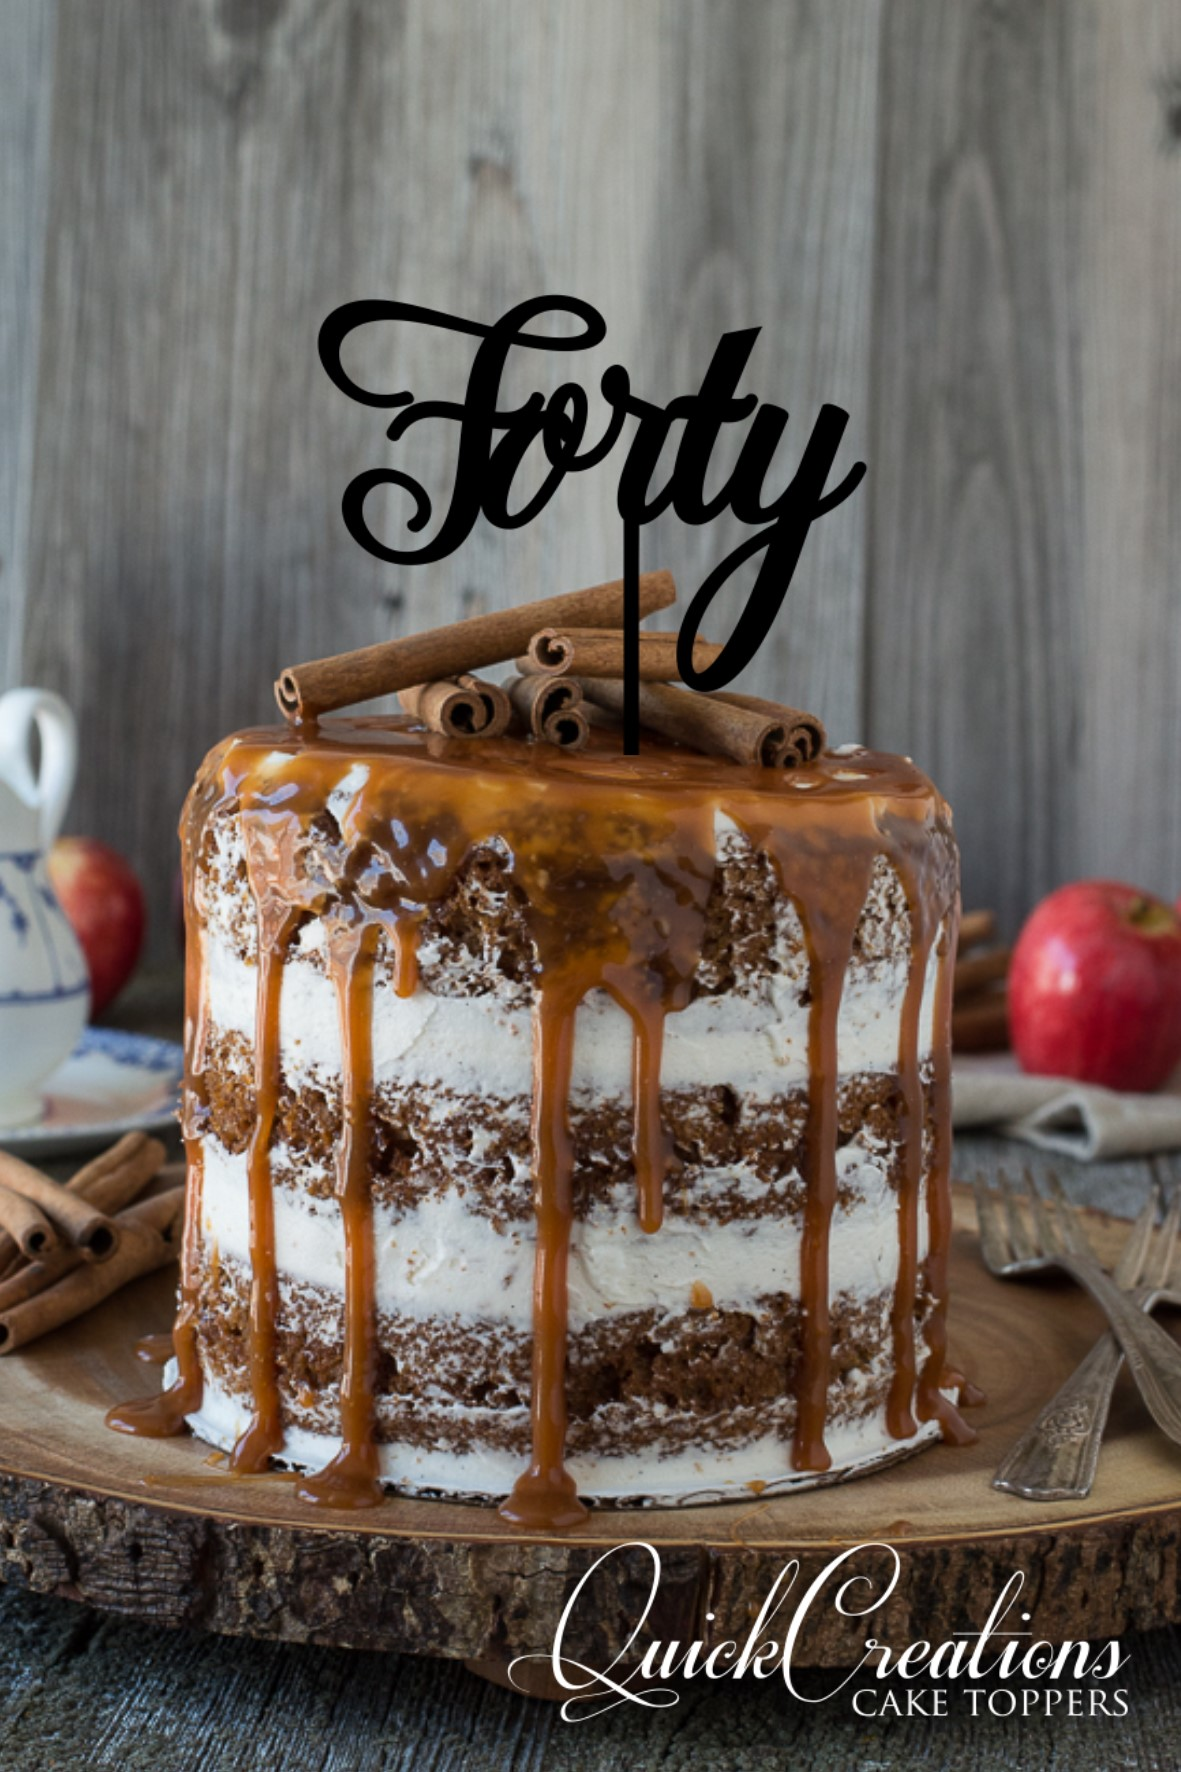 Quick Creations Cake Topper - Forty v2